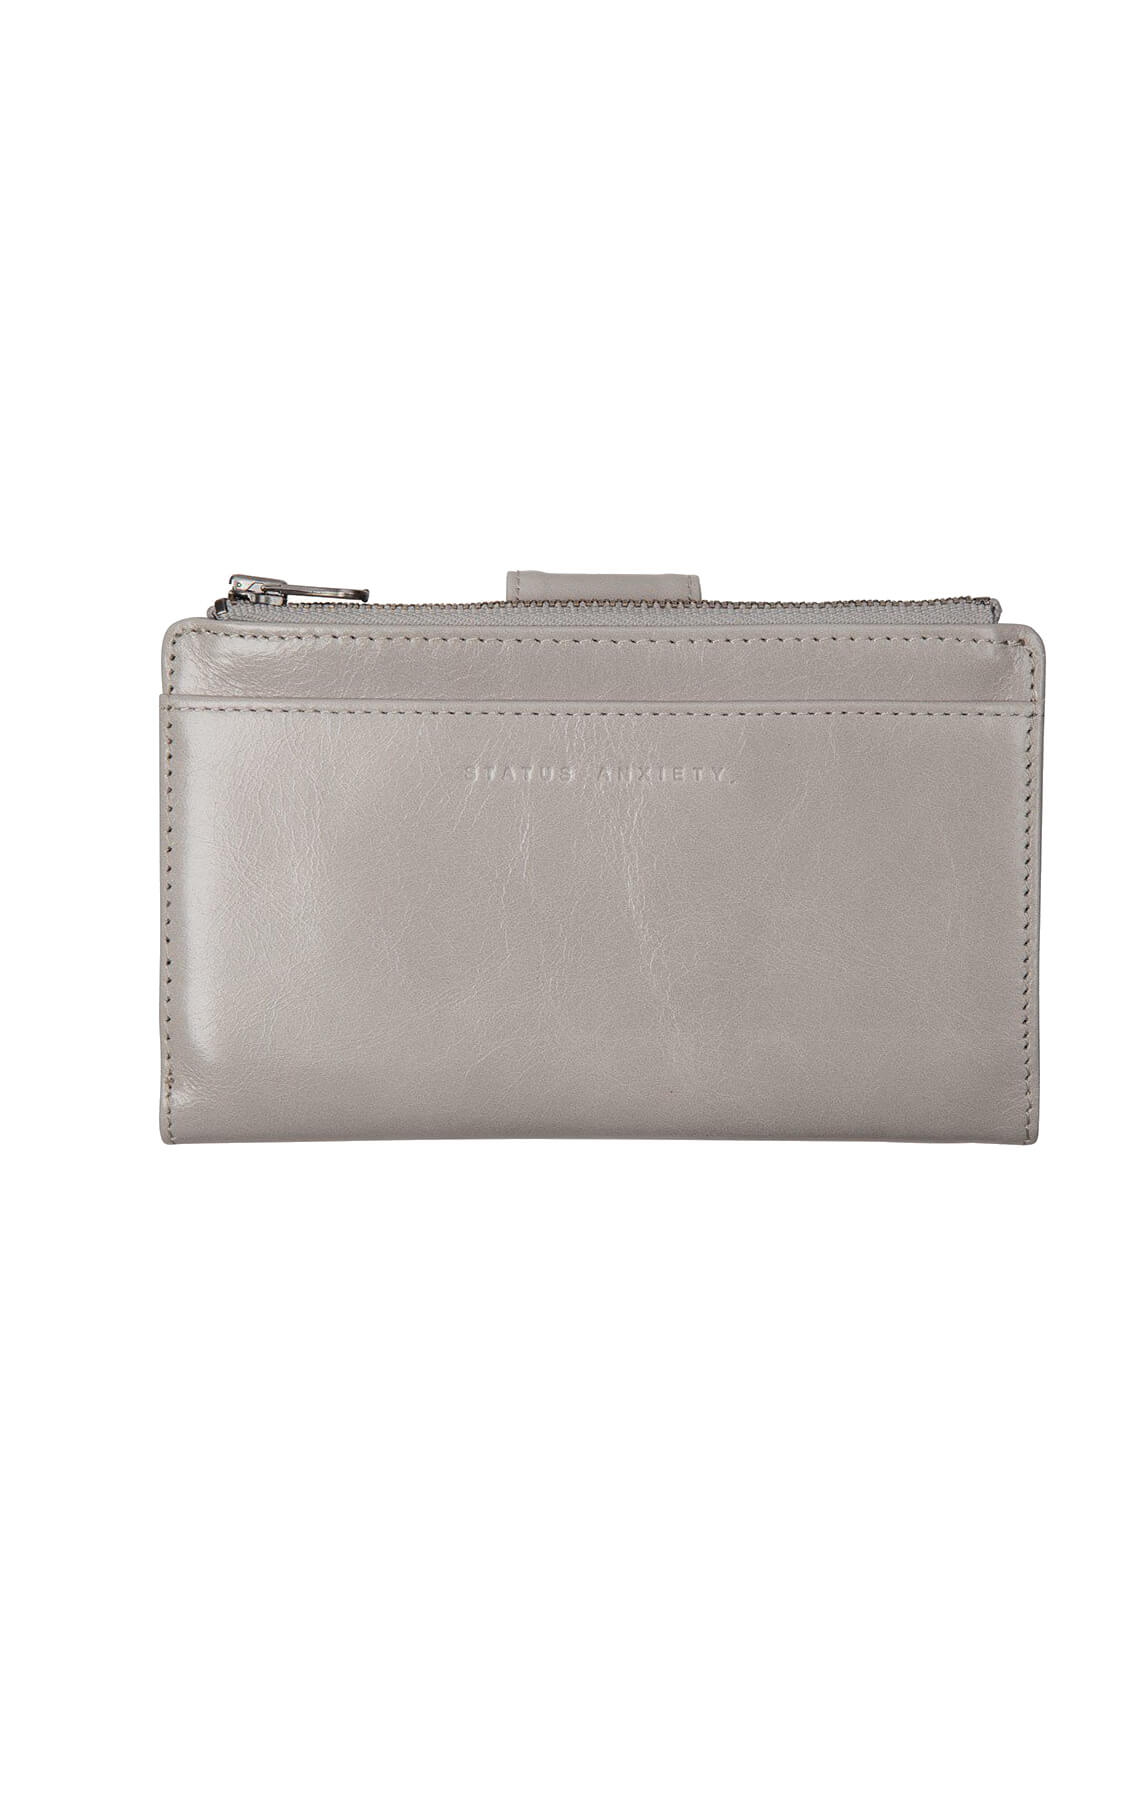 status anxiety outsider wallet grey